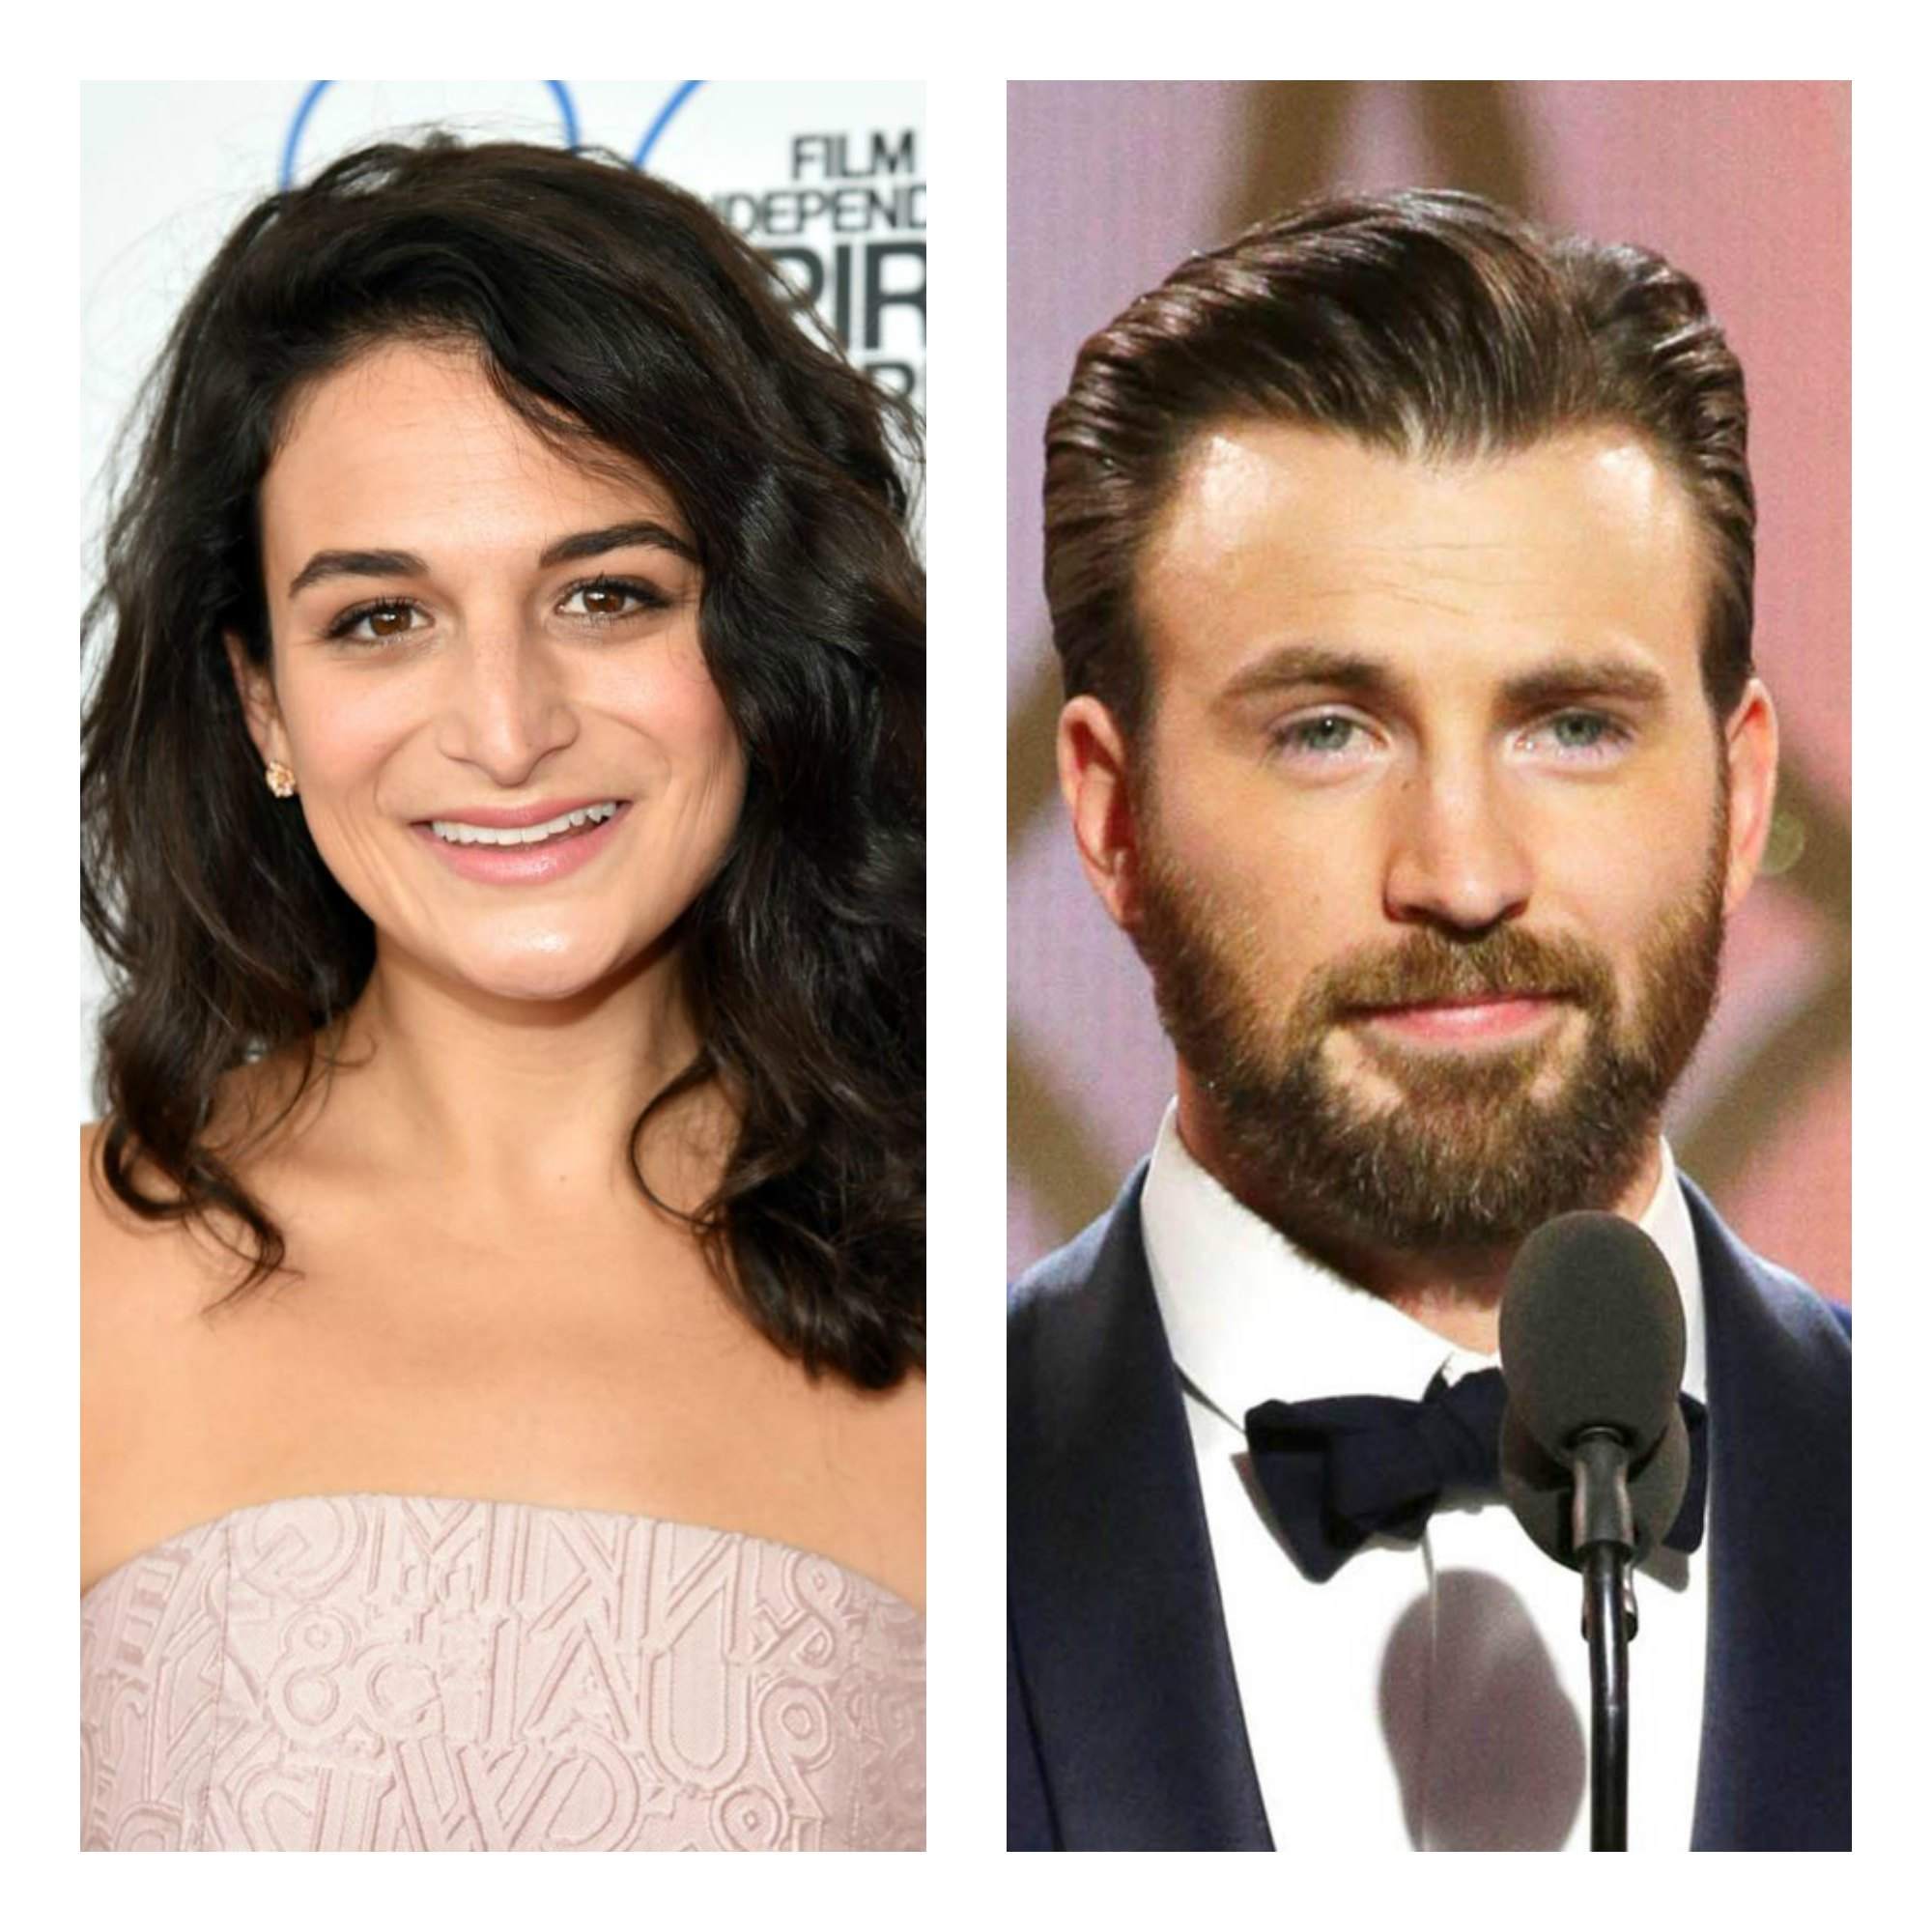 Chris Evans Is Now Reportedly Dating Jenny Slate!